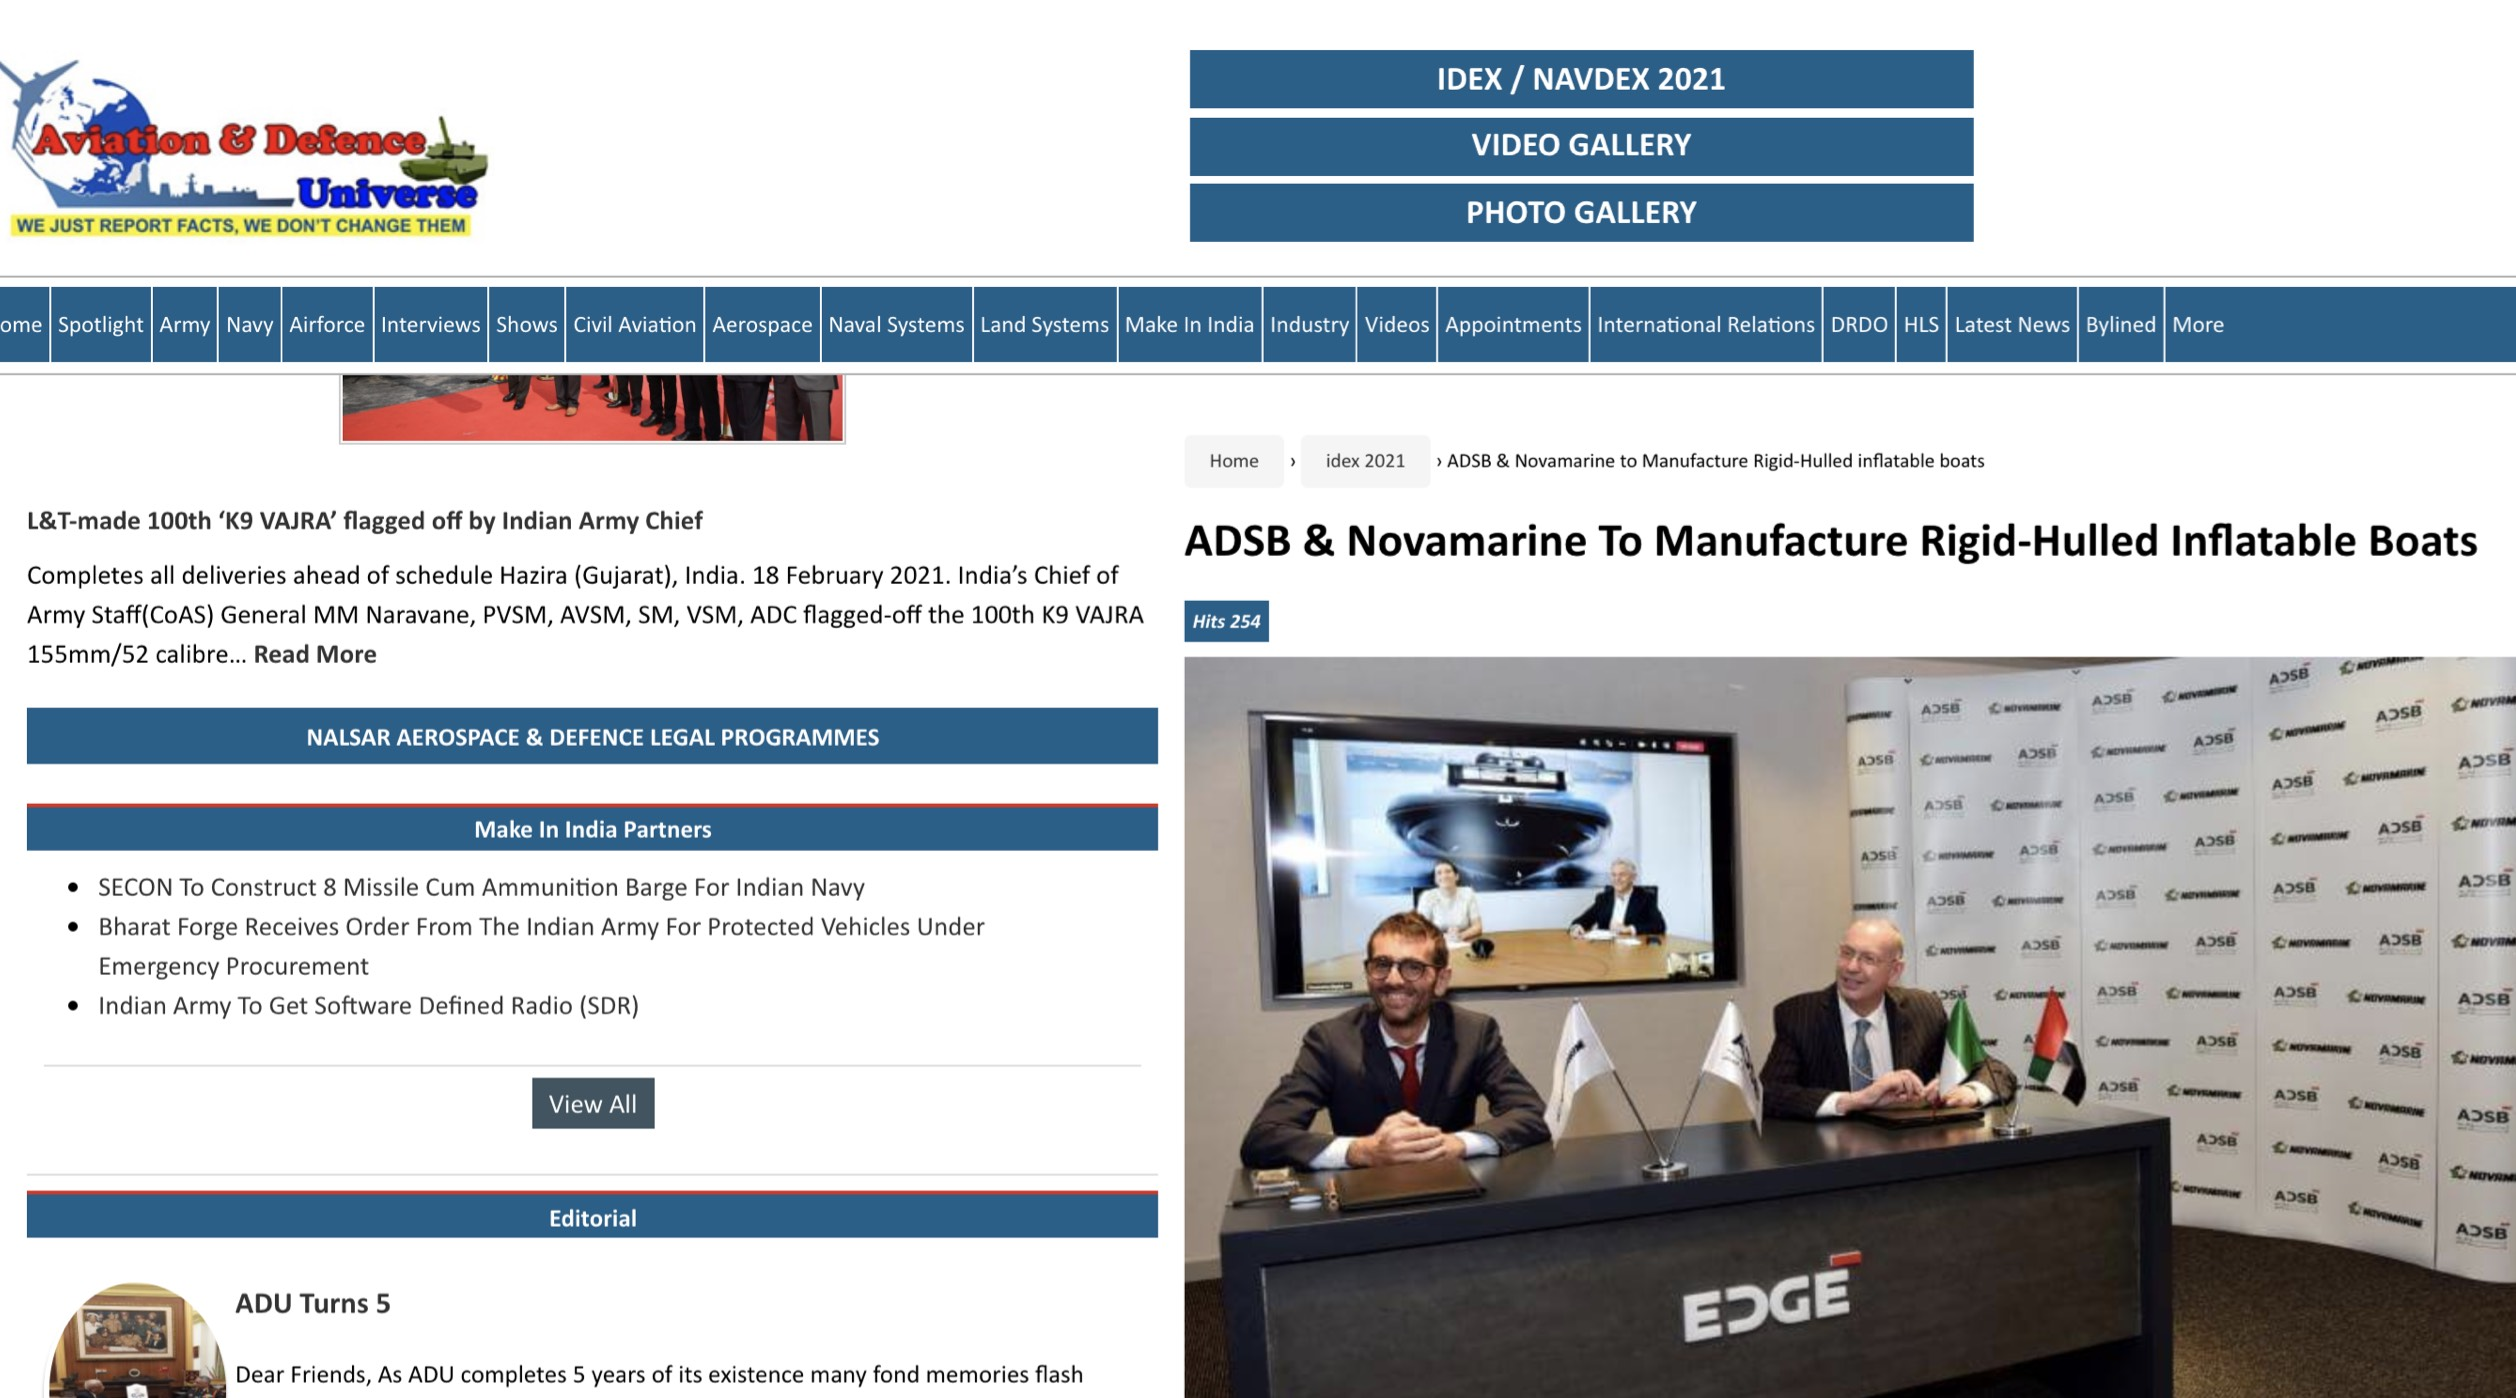 Aviation Defence Universe - ADSB & Novamarine to Manufacture Rigid-Hulled inflatable boats _ ADUsd